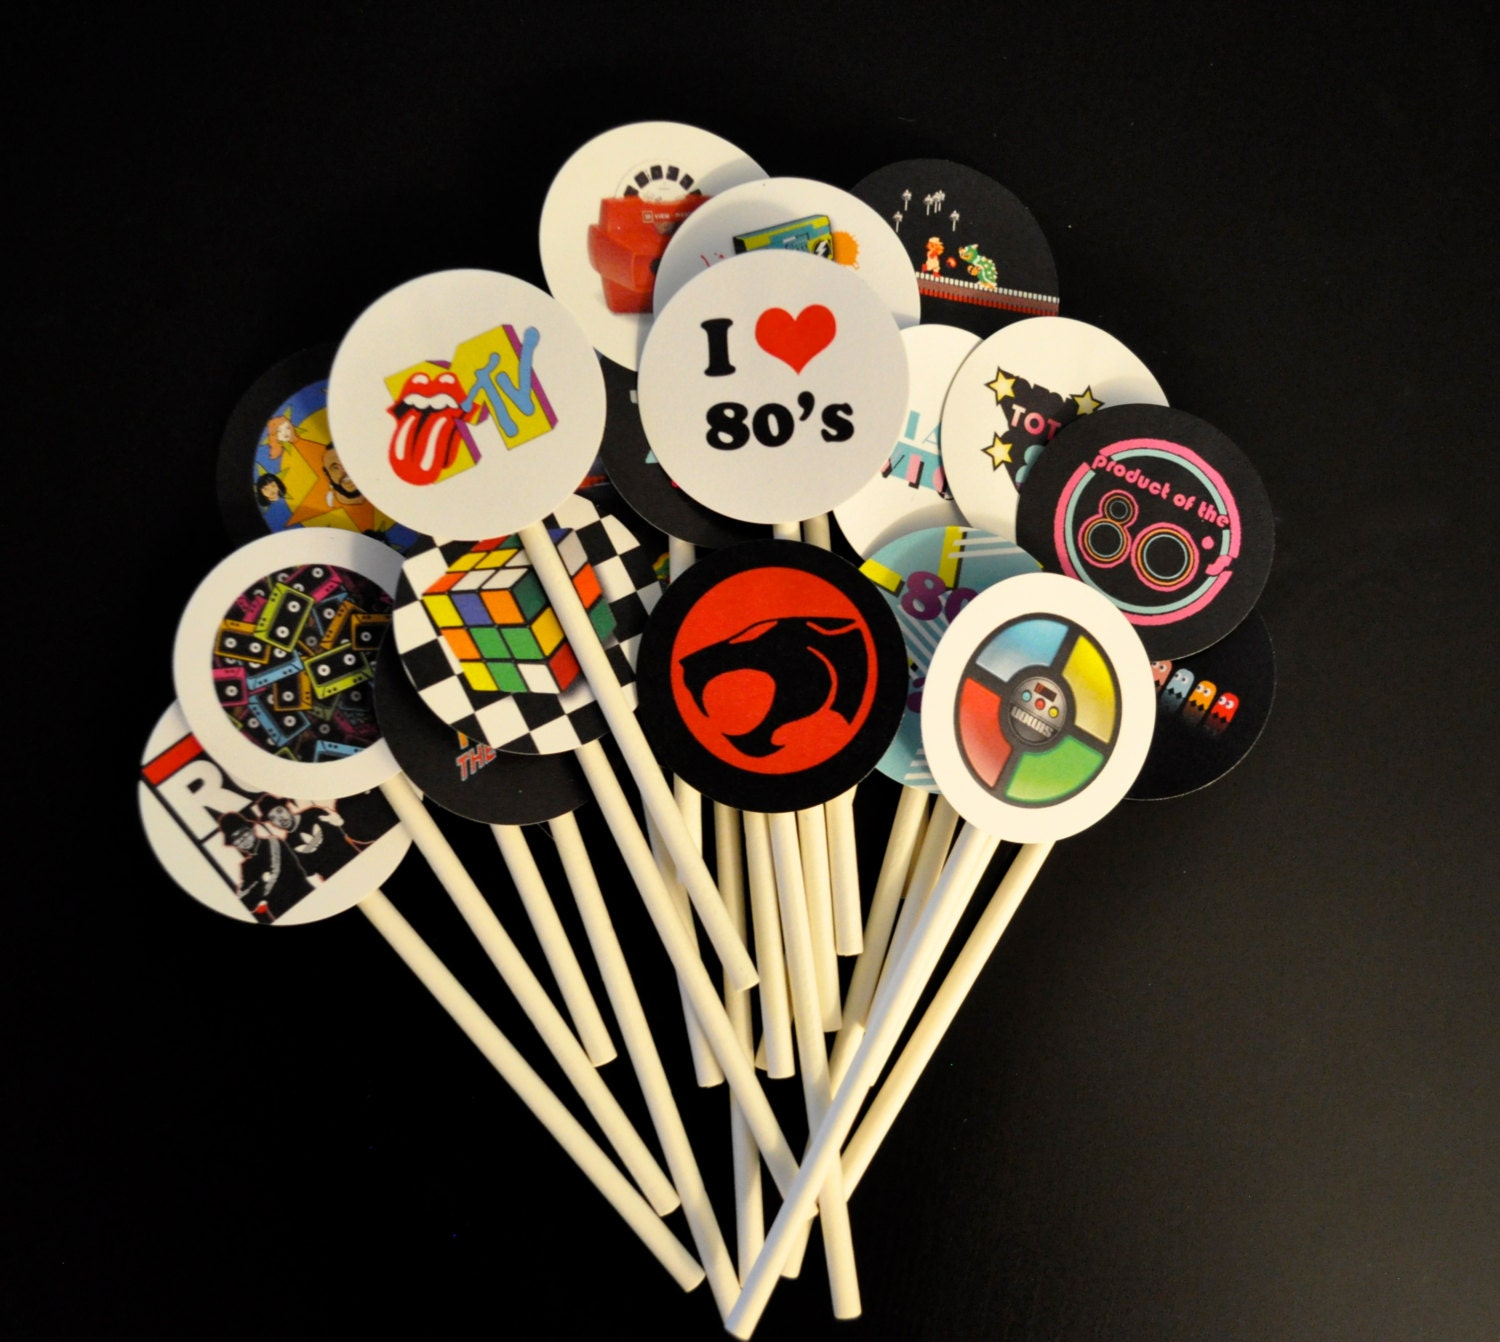 20 Totally Awesome 80s Cupcake Toppers 80s Theme Party cake